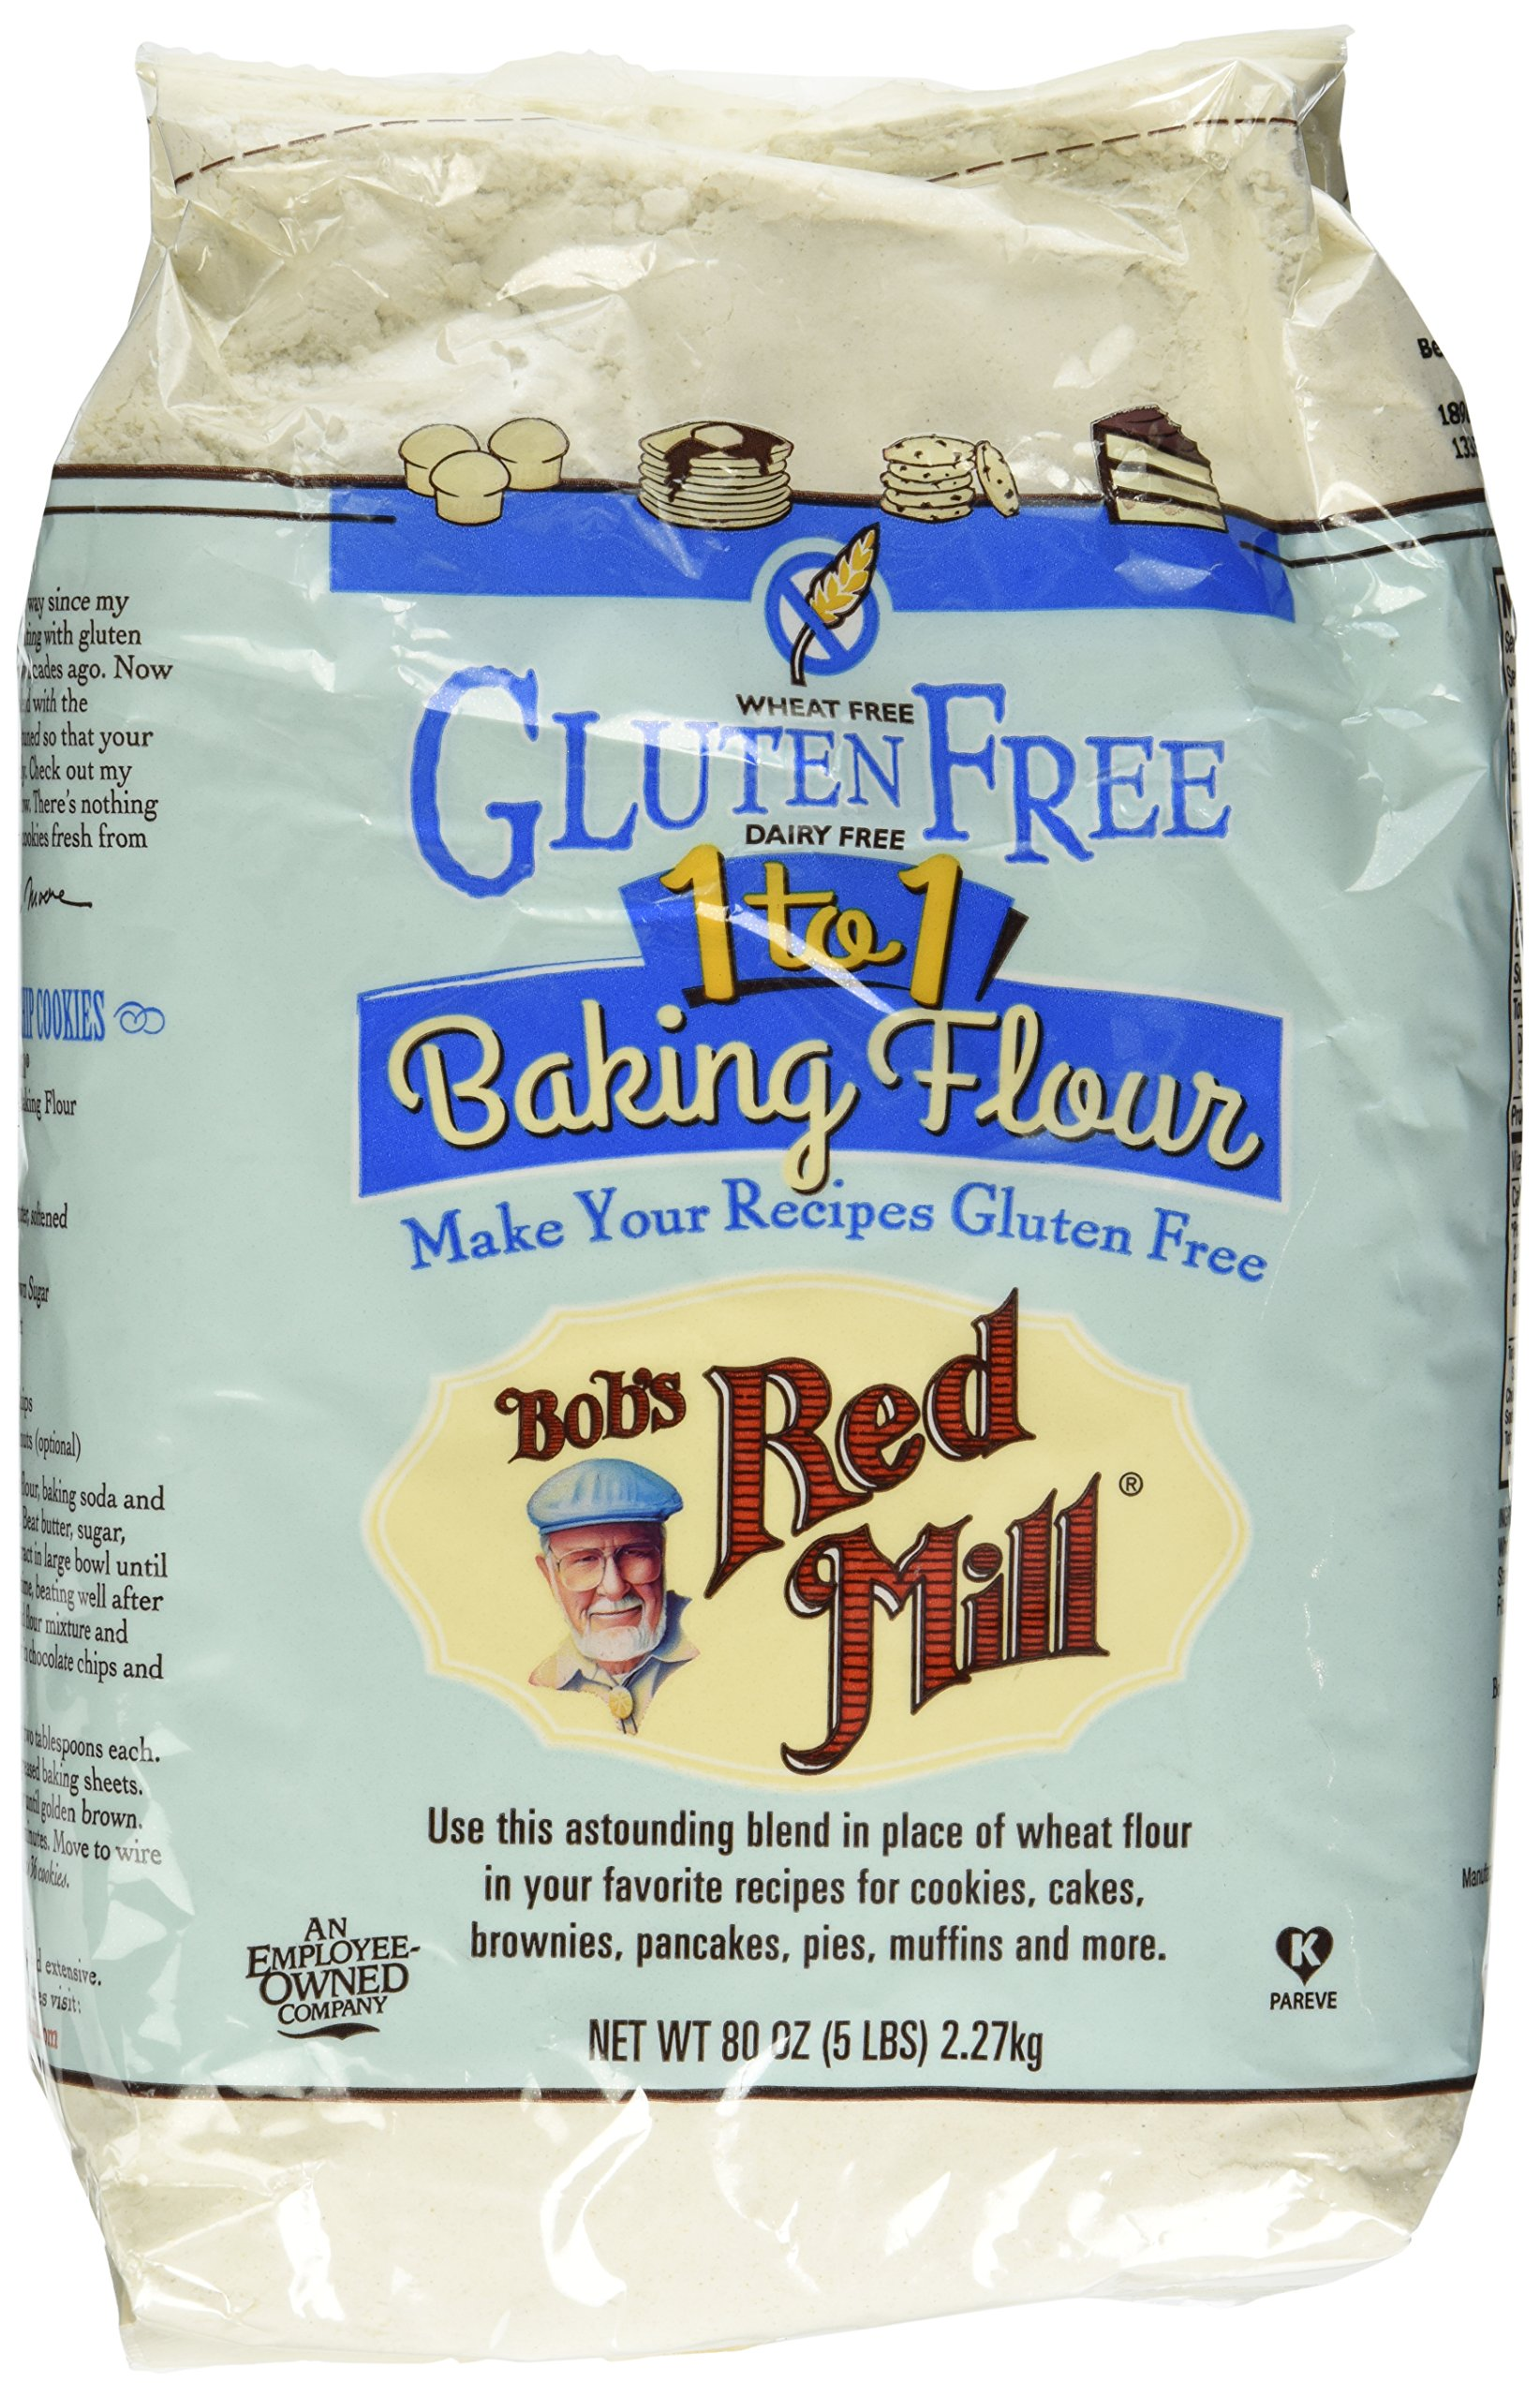 Bob's Red Mill Gluten Free 1-to-1 Baking Flour, 5 Pound by Bob's Red Mill (Image #2)